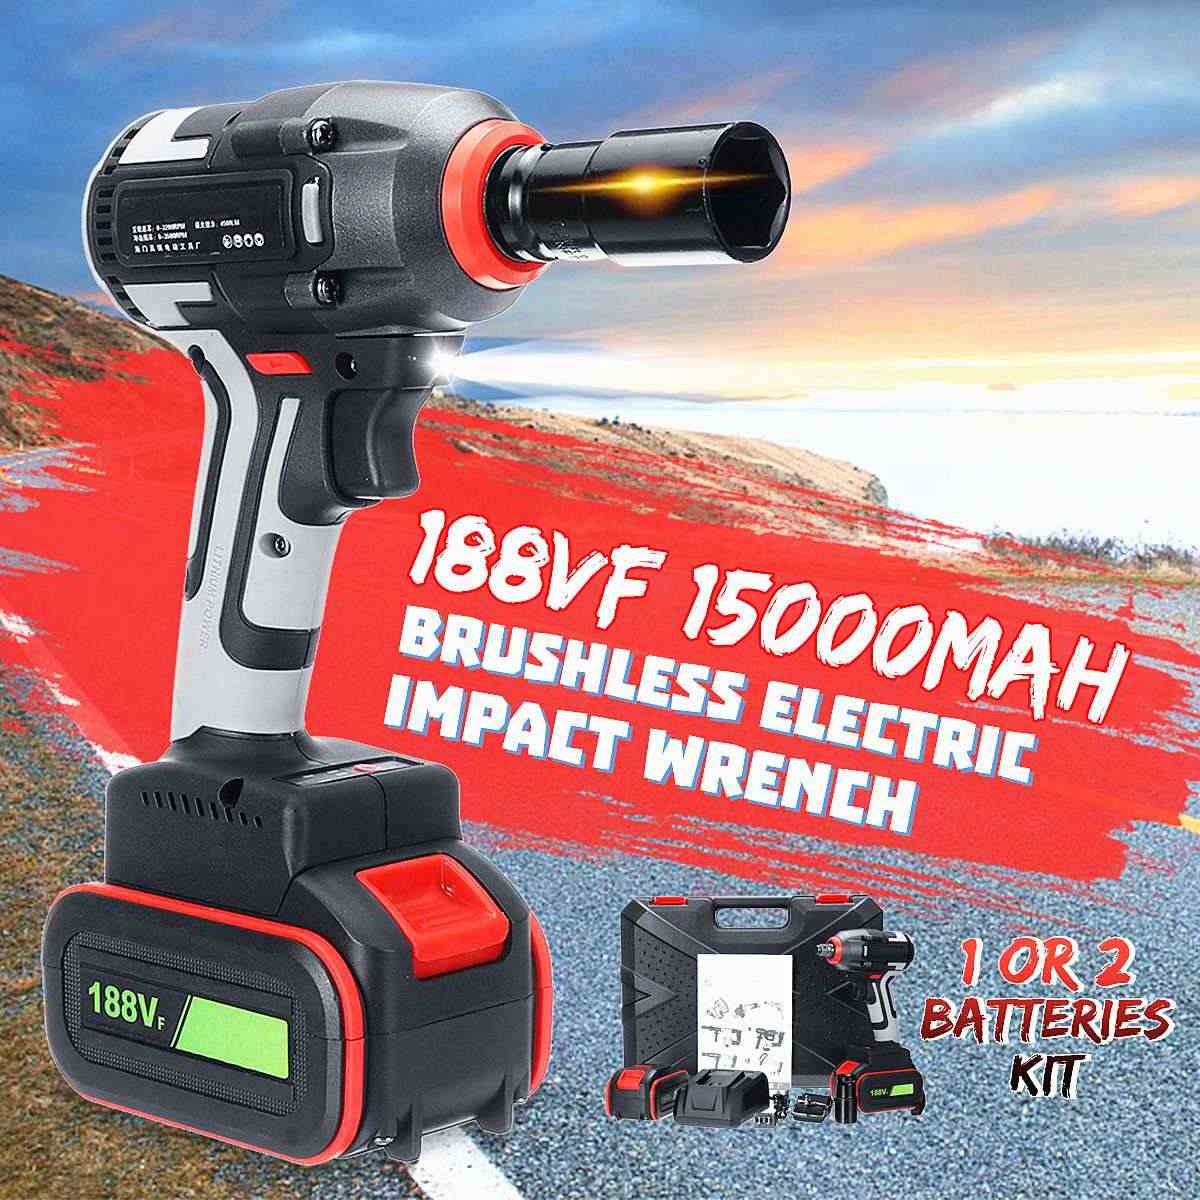 Newest 188V Brushless Cordless Electric Wrench Impact Socket Wrench 15000mAh Li-ion Battery Hand Drill Installation Power Tools